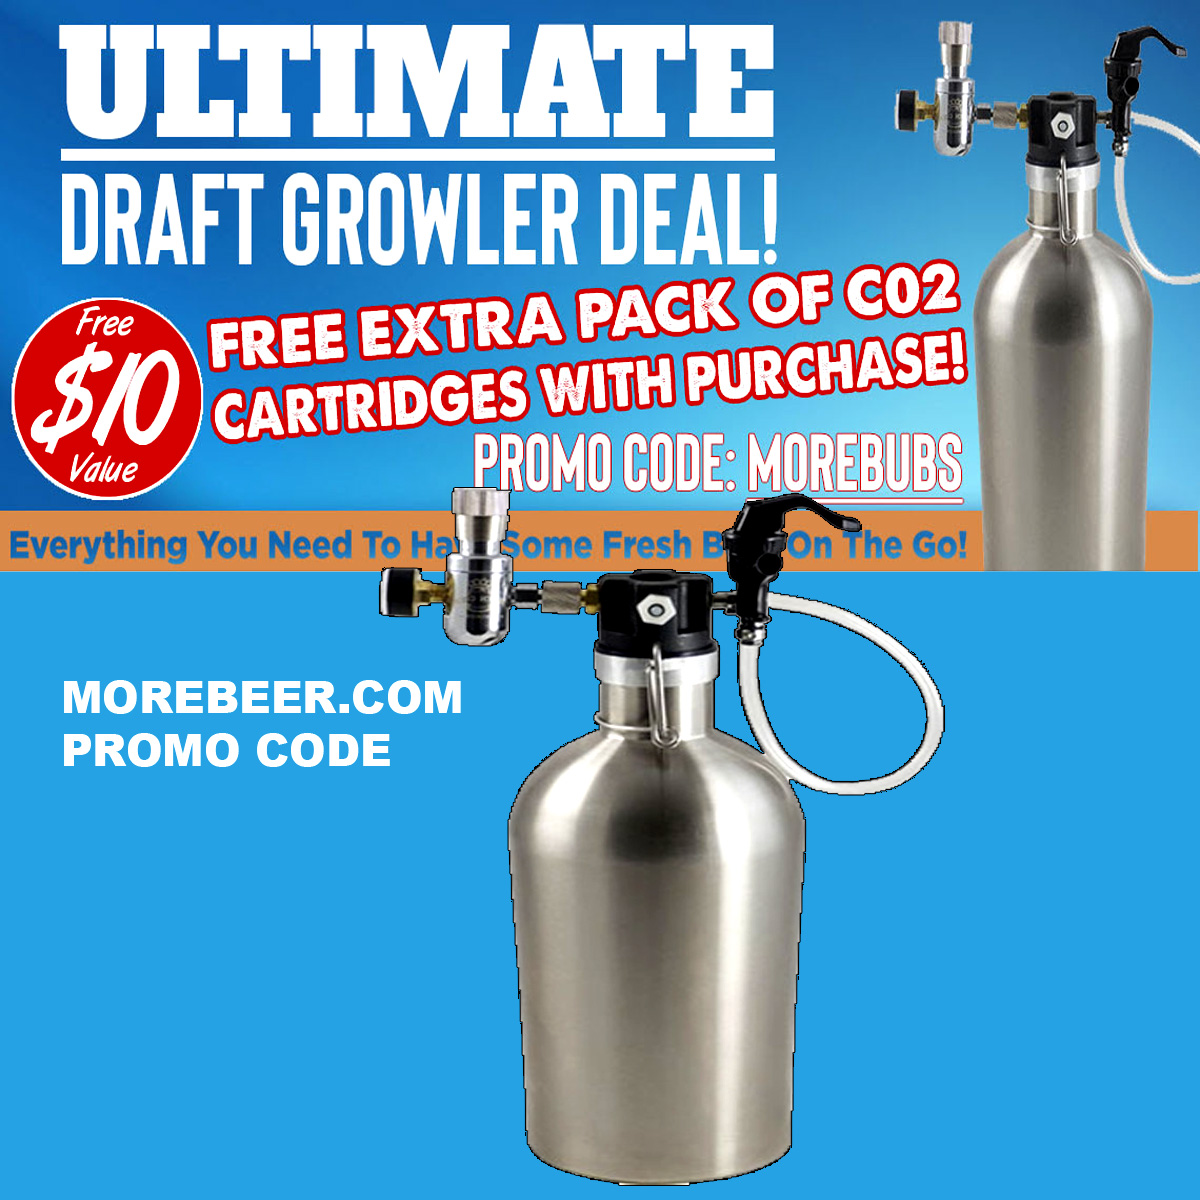 Home Wine Making Coupon Codes for Get A Free Extra Pack Of CO2 Cartridges with the Purchase Of Ultimate Draft Growler MoreBeer.com Promo Code Coupon Code